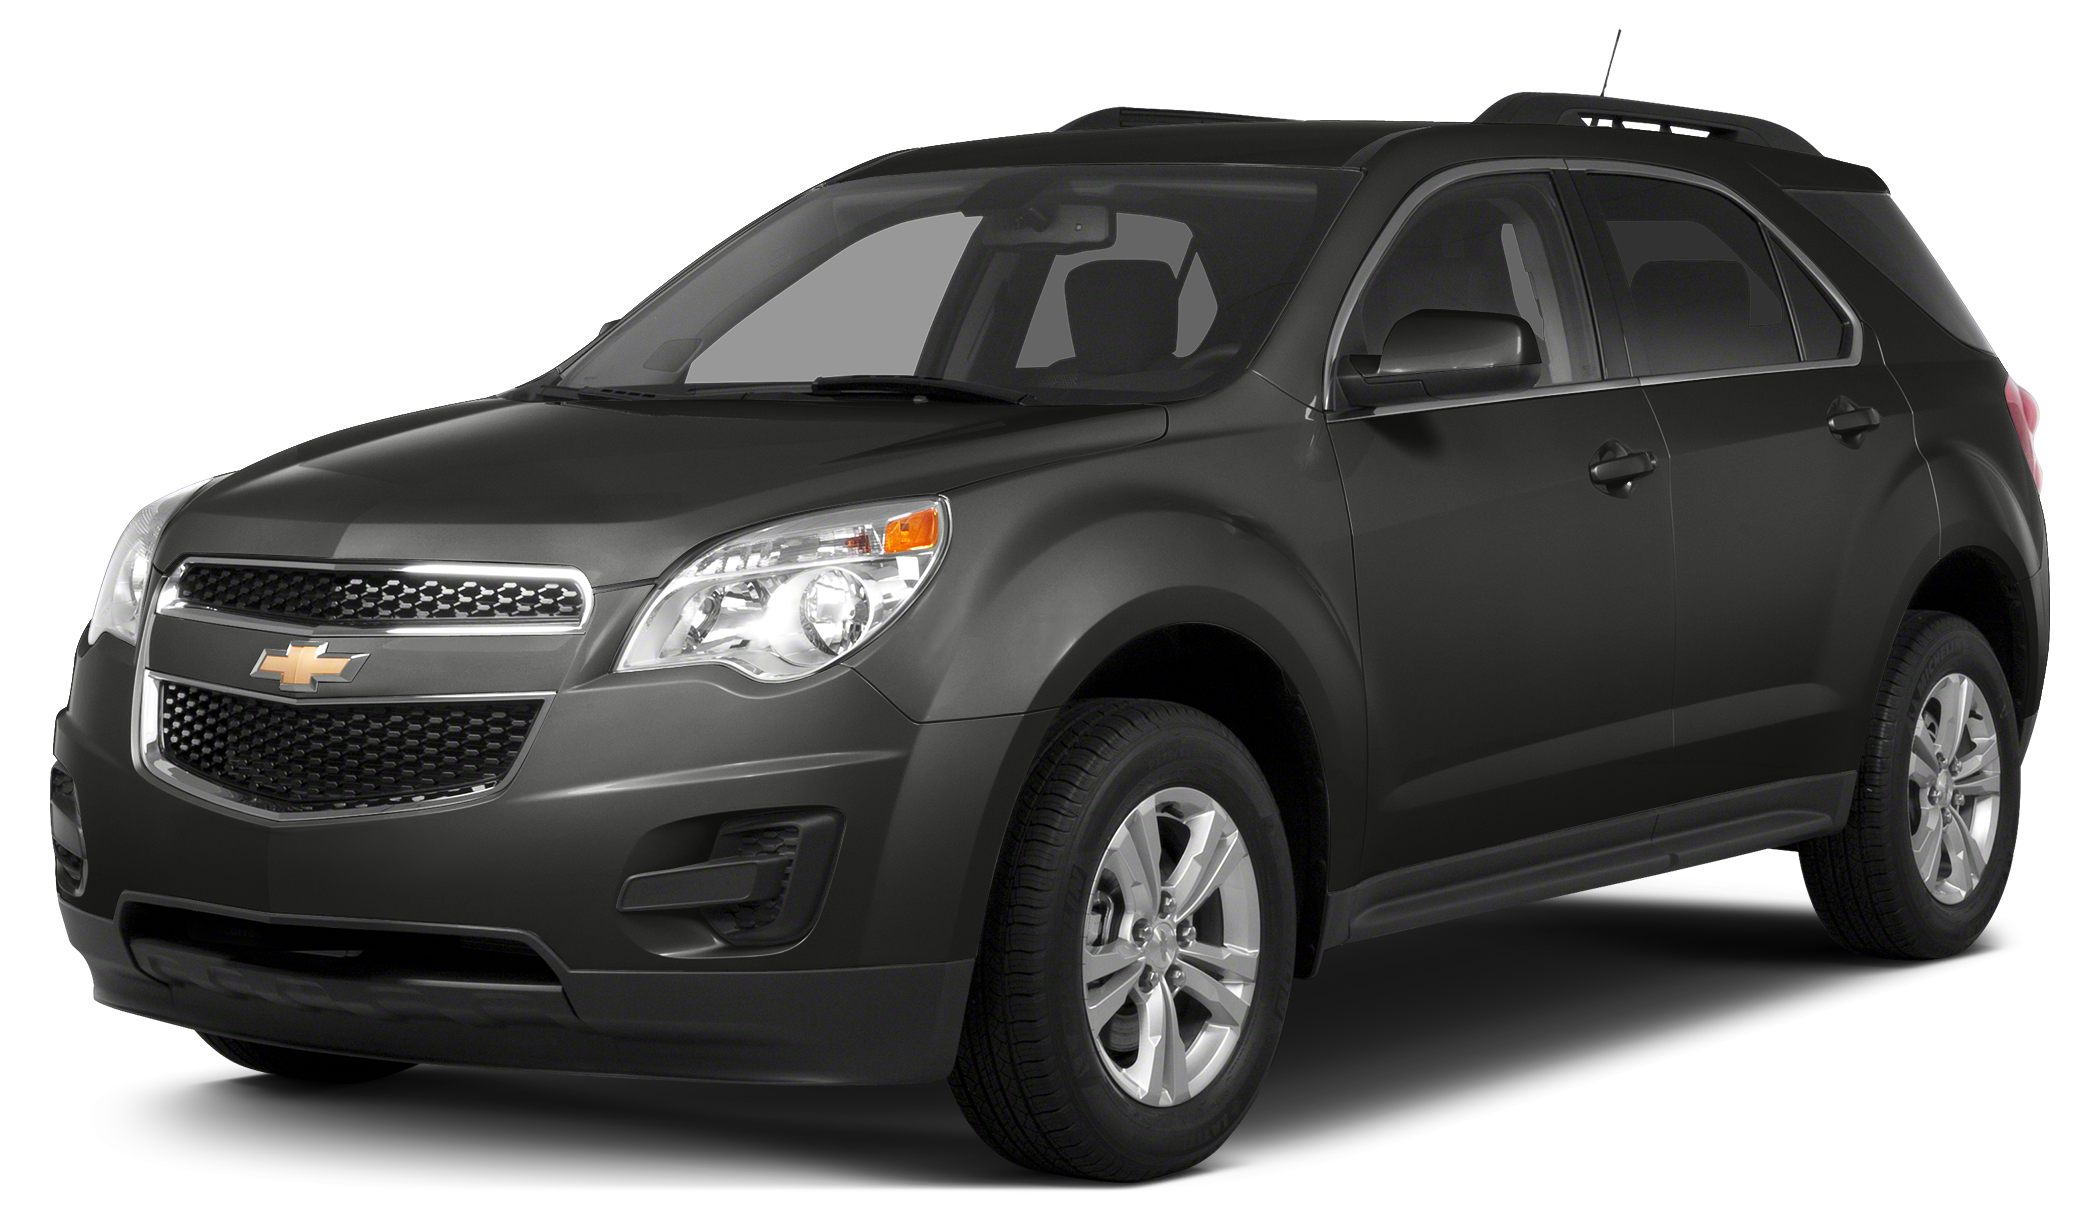 2013 Chevrolet Equinox 1LT FUEL EFFICIENT 32 MPG Hwy22 MPG City Excellent Condition GREAT MILES